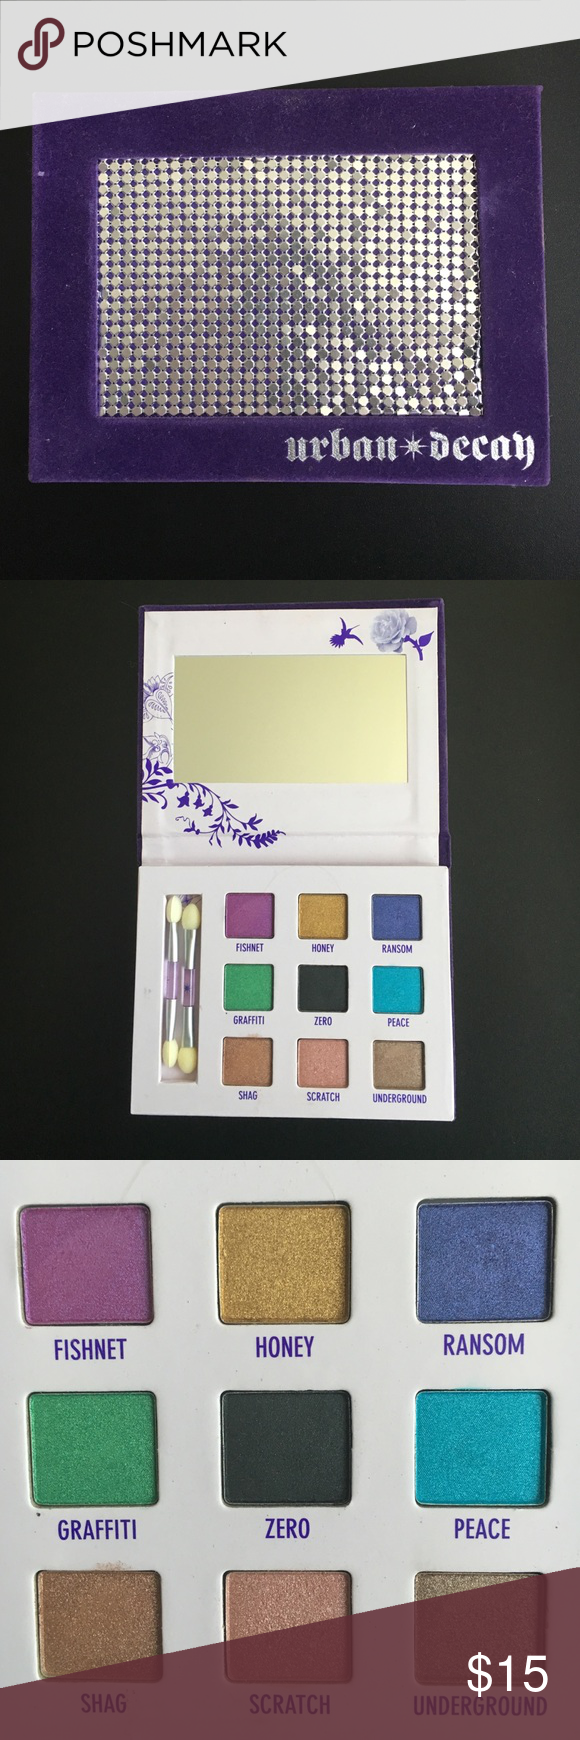 urban decay eyeshadow palette older ud eyeshadow palette unsure of